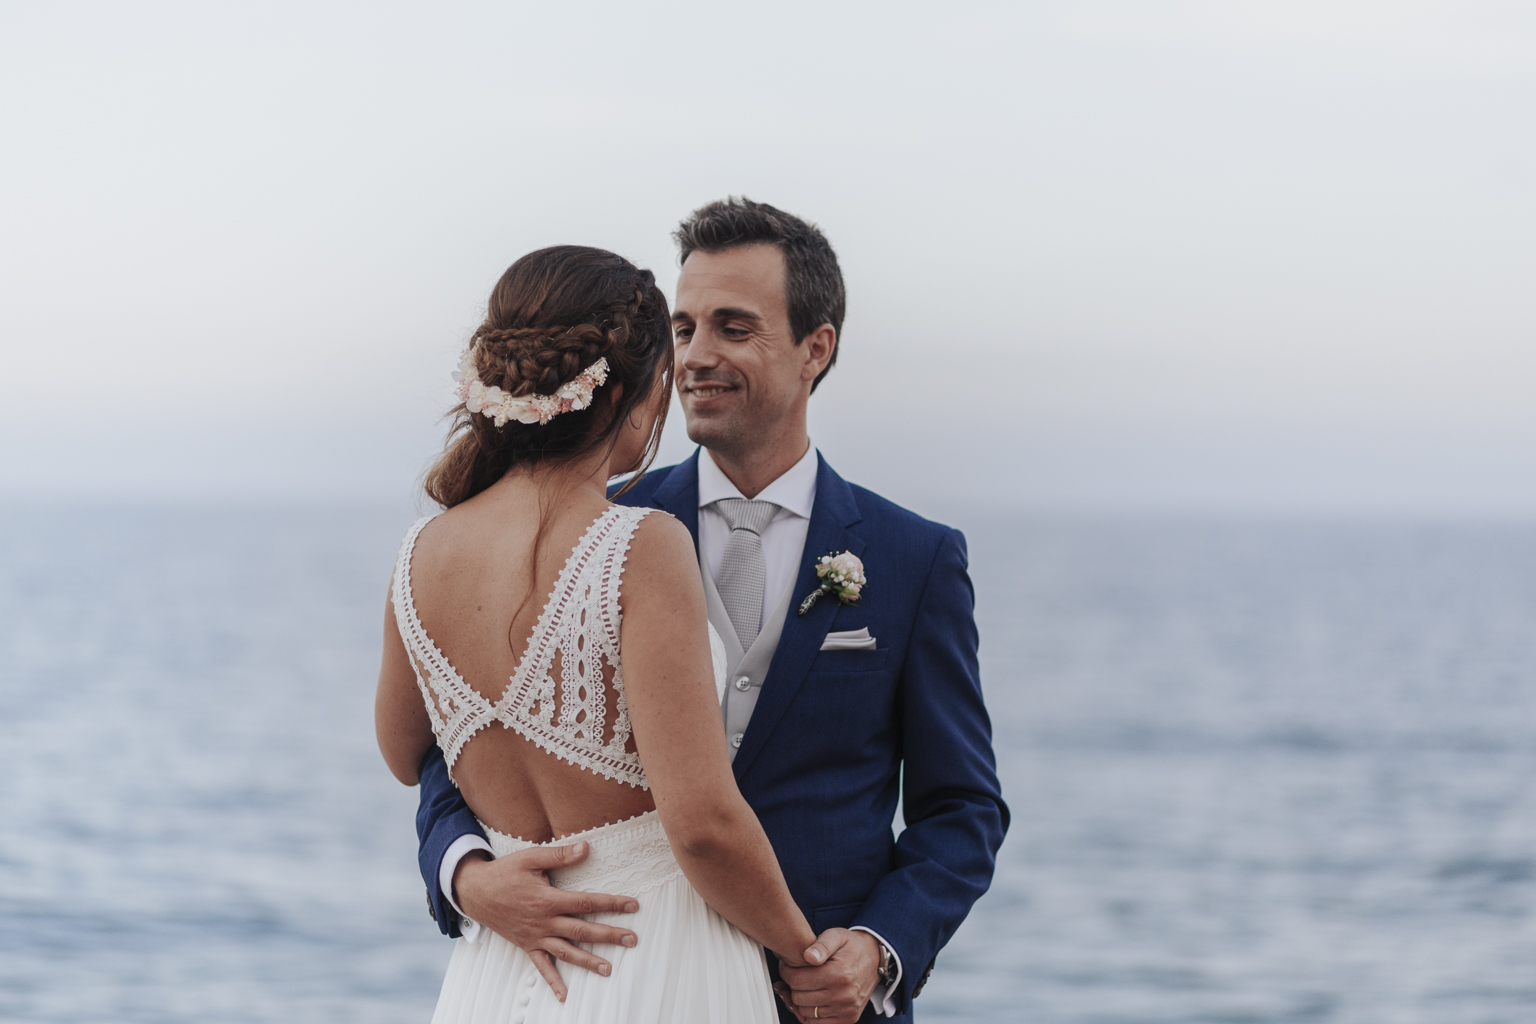 fotógrafo boda barcelona :: boda en la playa :: barcelona wedding photographer :: destination wedding :: dblanc